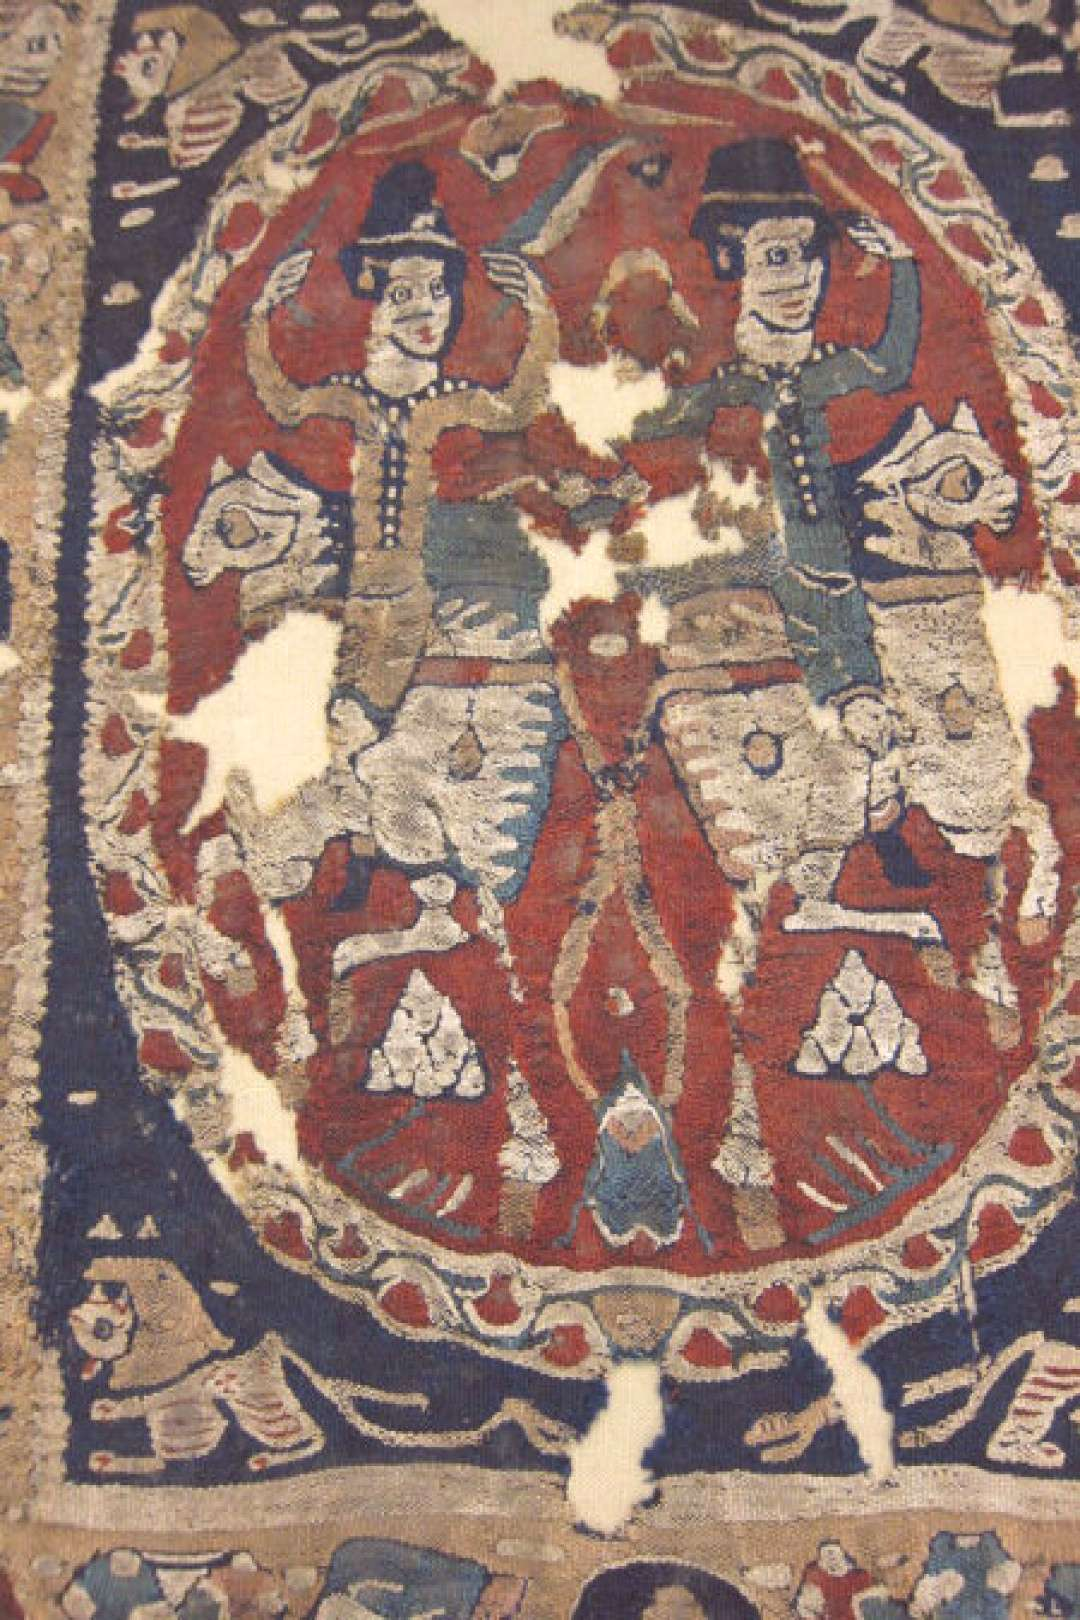 Hanging or curtain (detail), Eastern Roman Empire, Egypt or Turkey, 4th to 5th century. The Textile